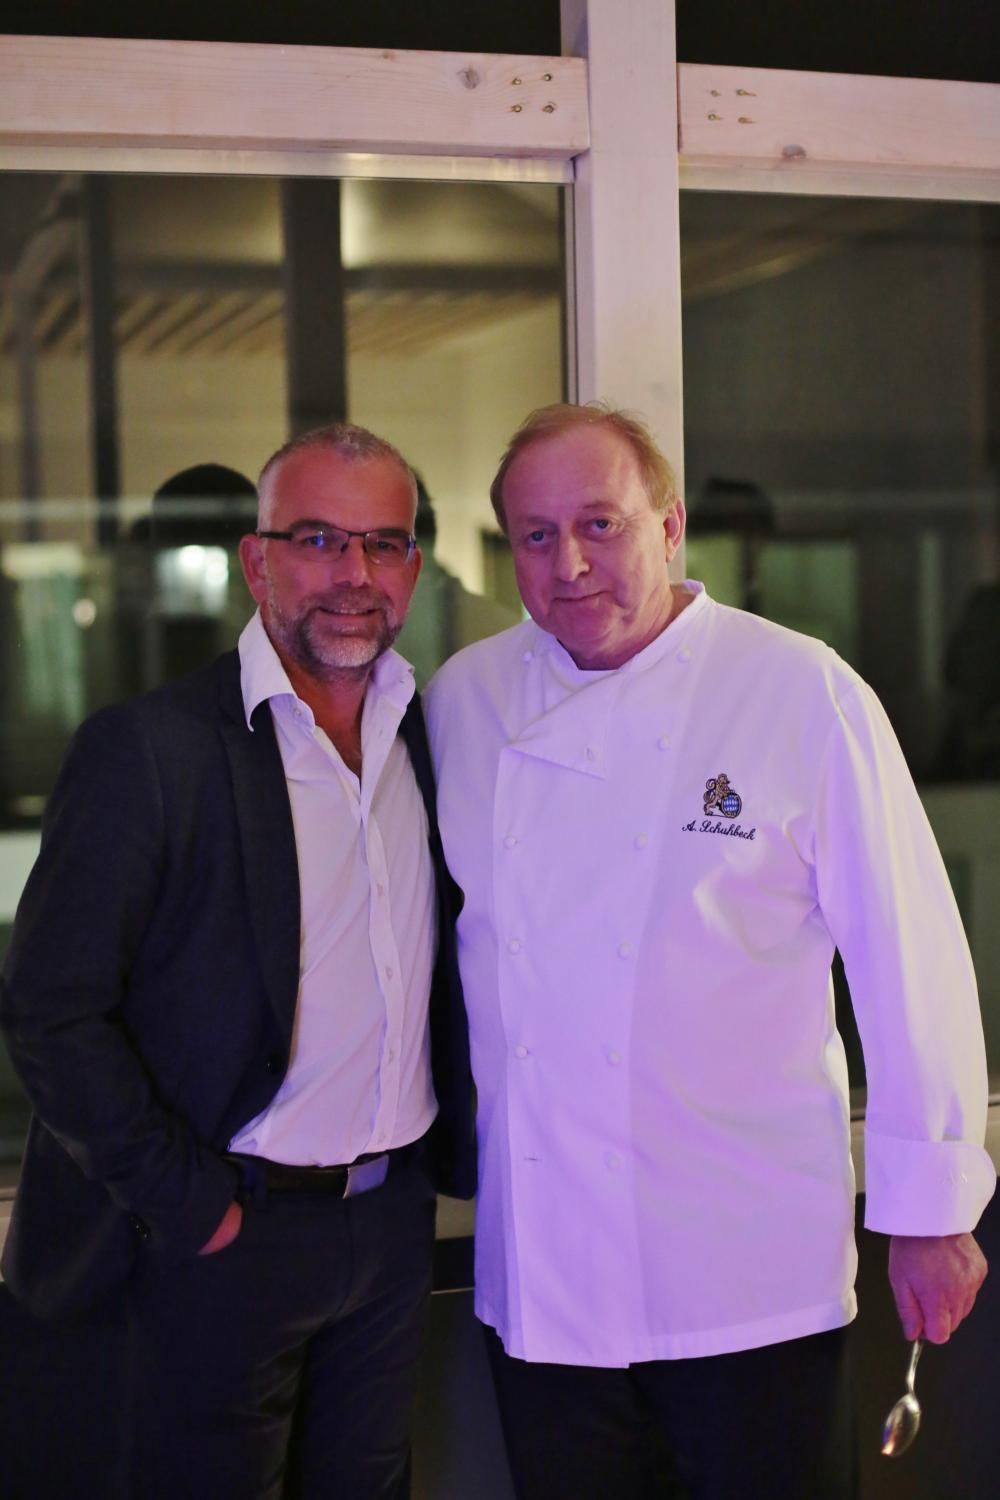 Ambiente Direct sven stubenrauch ceo of ambientedirect com and chef